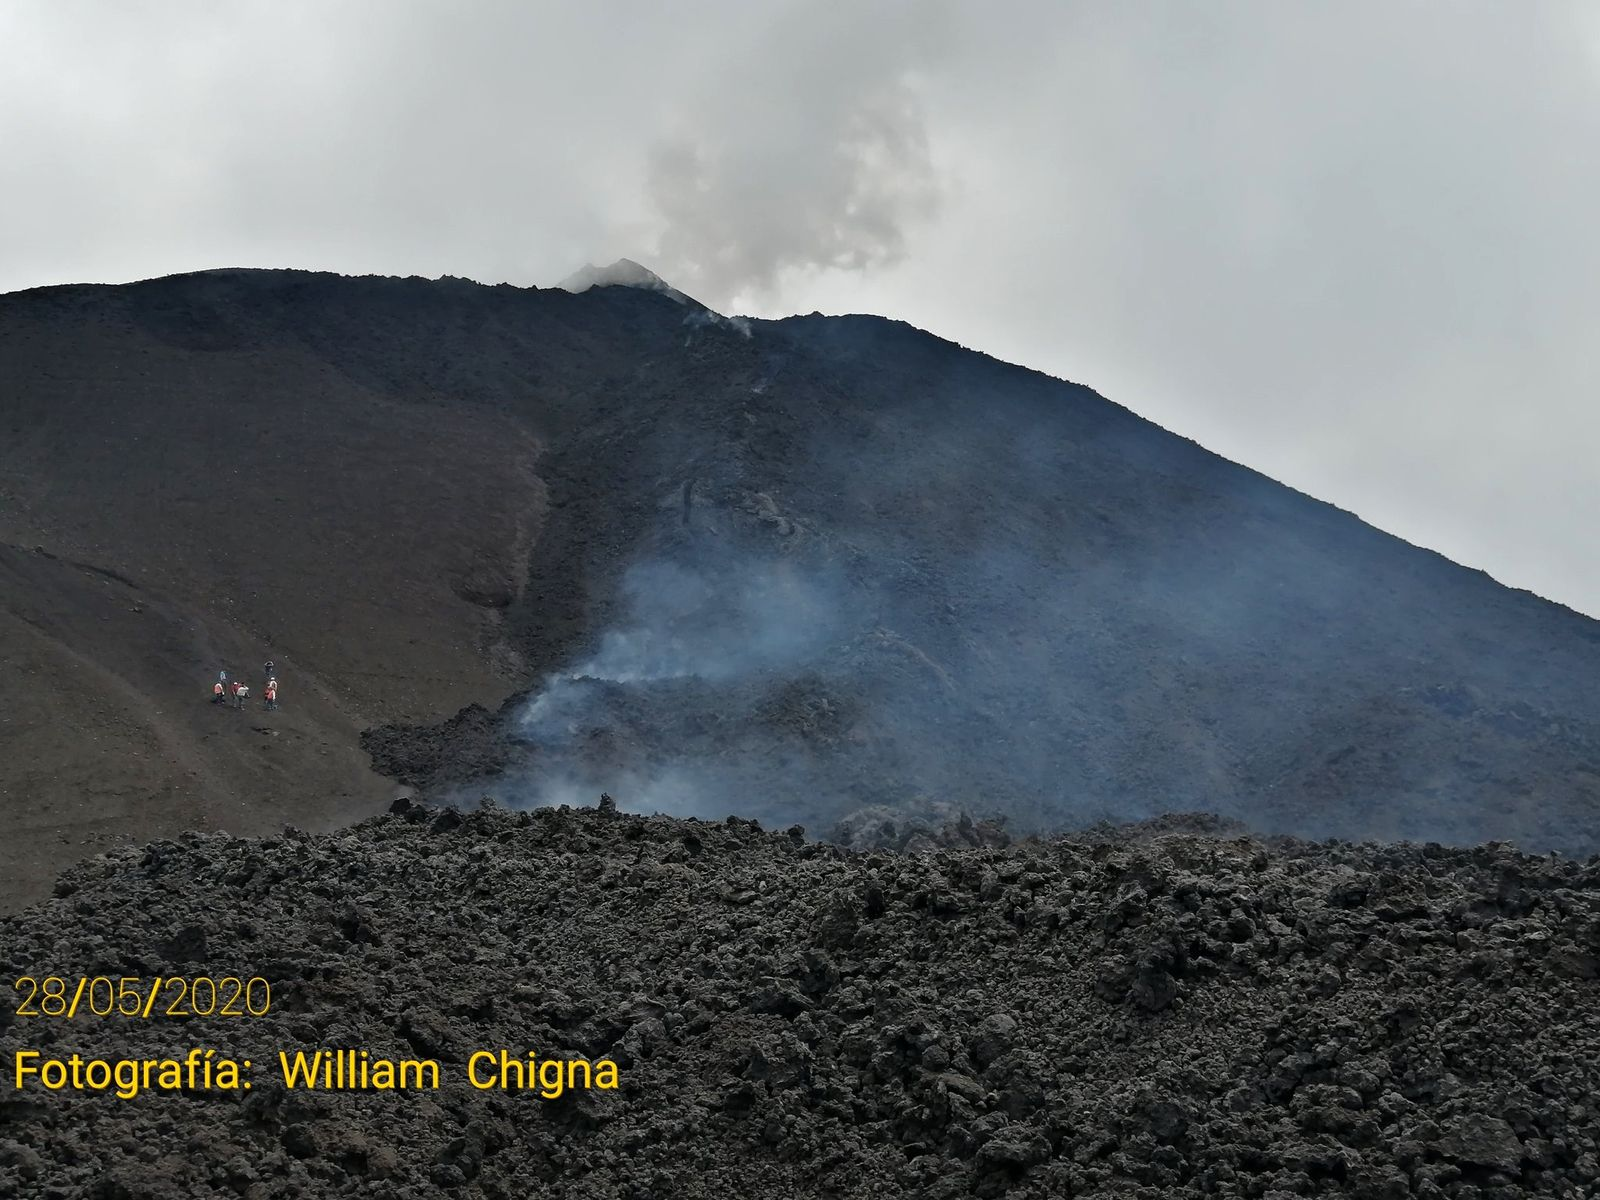 Pacaya - lava flow from MacKenney crater (people on the left give the scale) - photo William Chigne / Twitter 05.28.2020